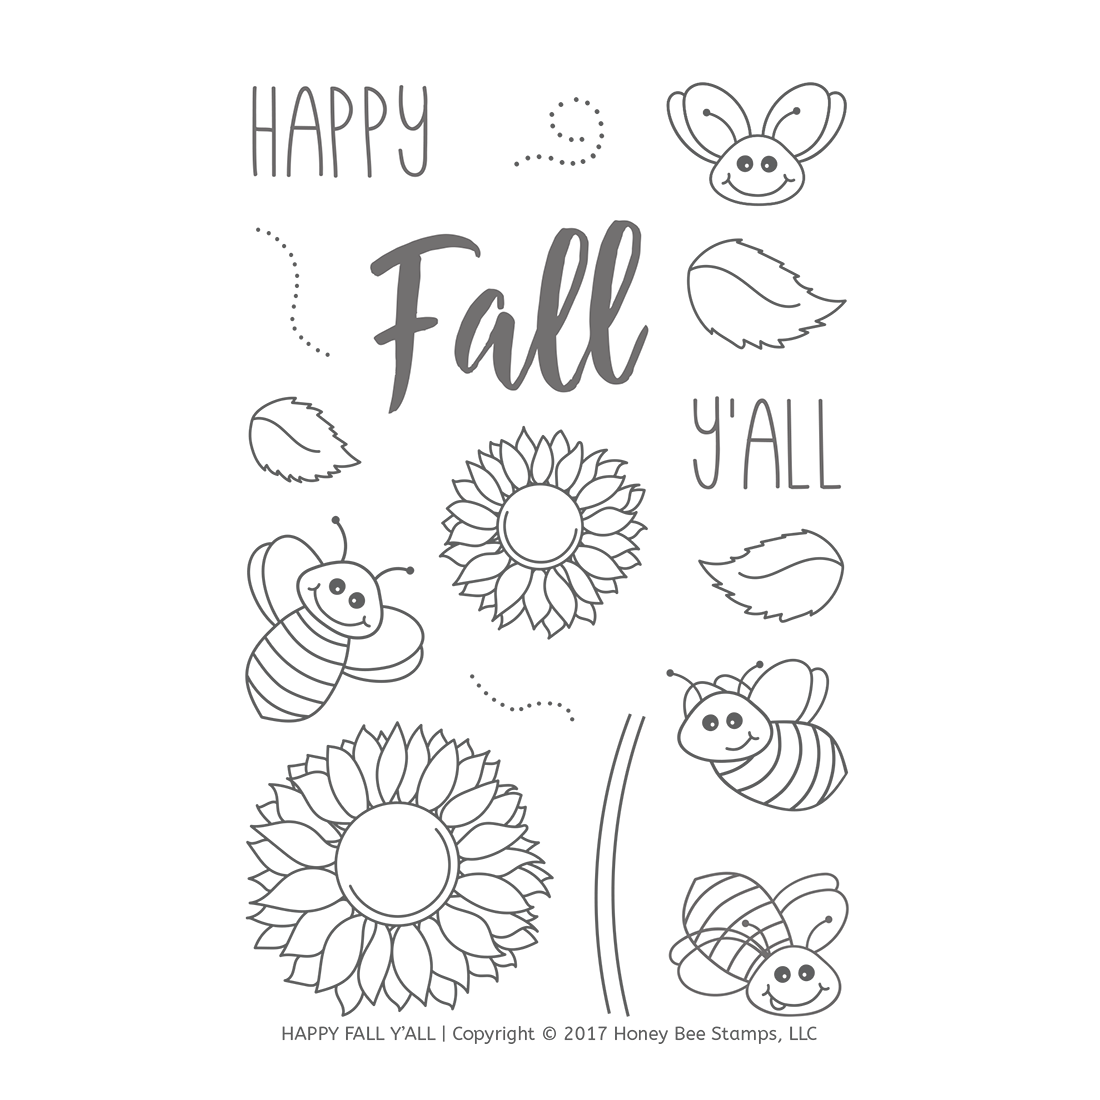 Honeybee Bee Stamps - Happy Fall Y'all | 4x6 Stamp Set